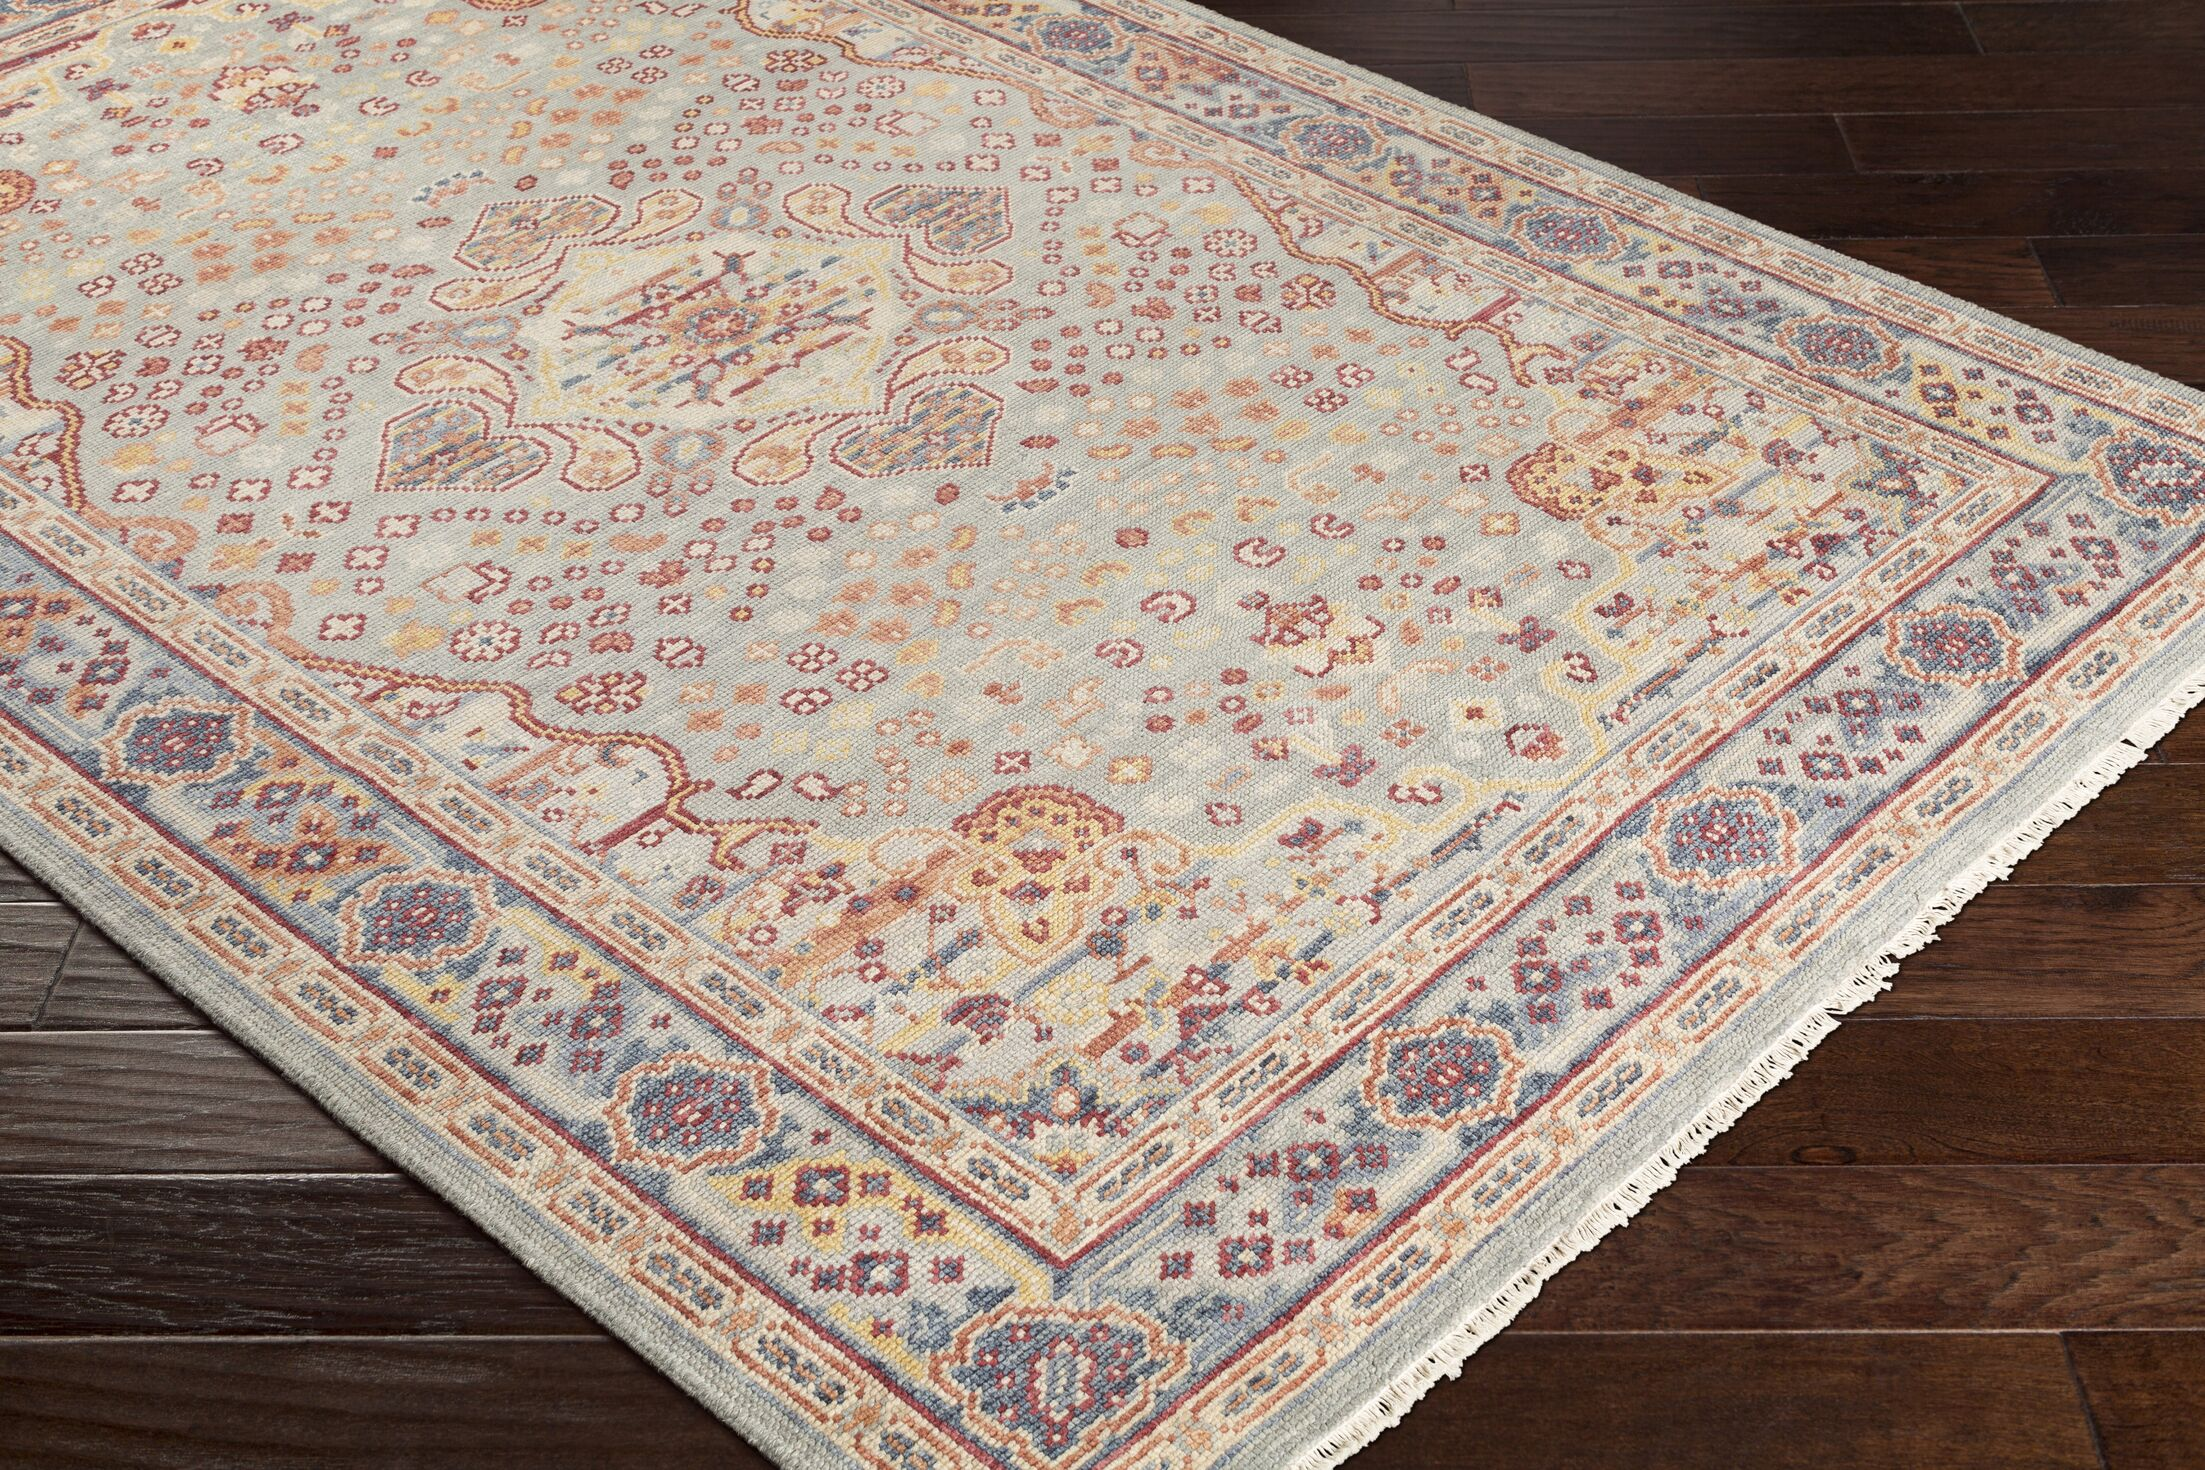 Pettry Hand-Knotted Wool Orange/Sage Area Rug Rug Size: Rectangle 3'6